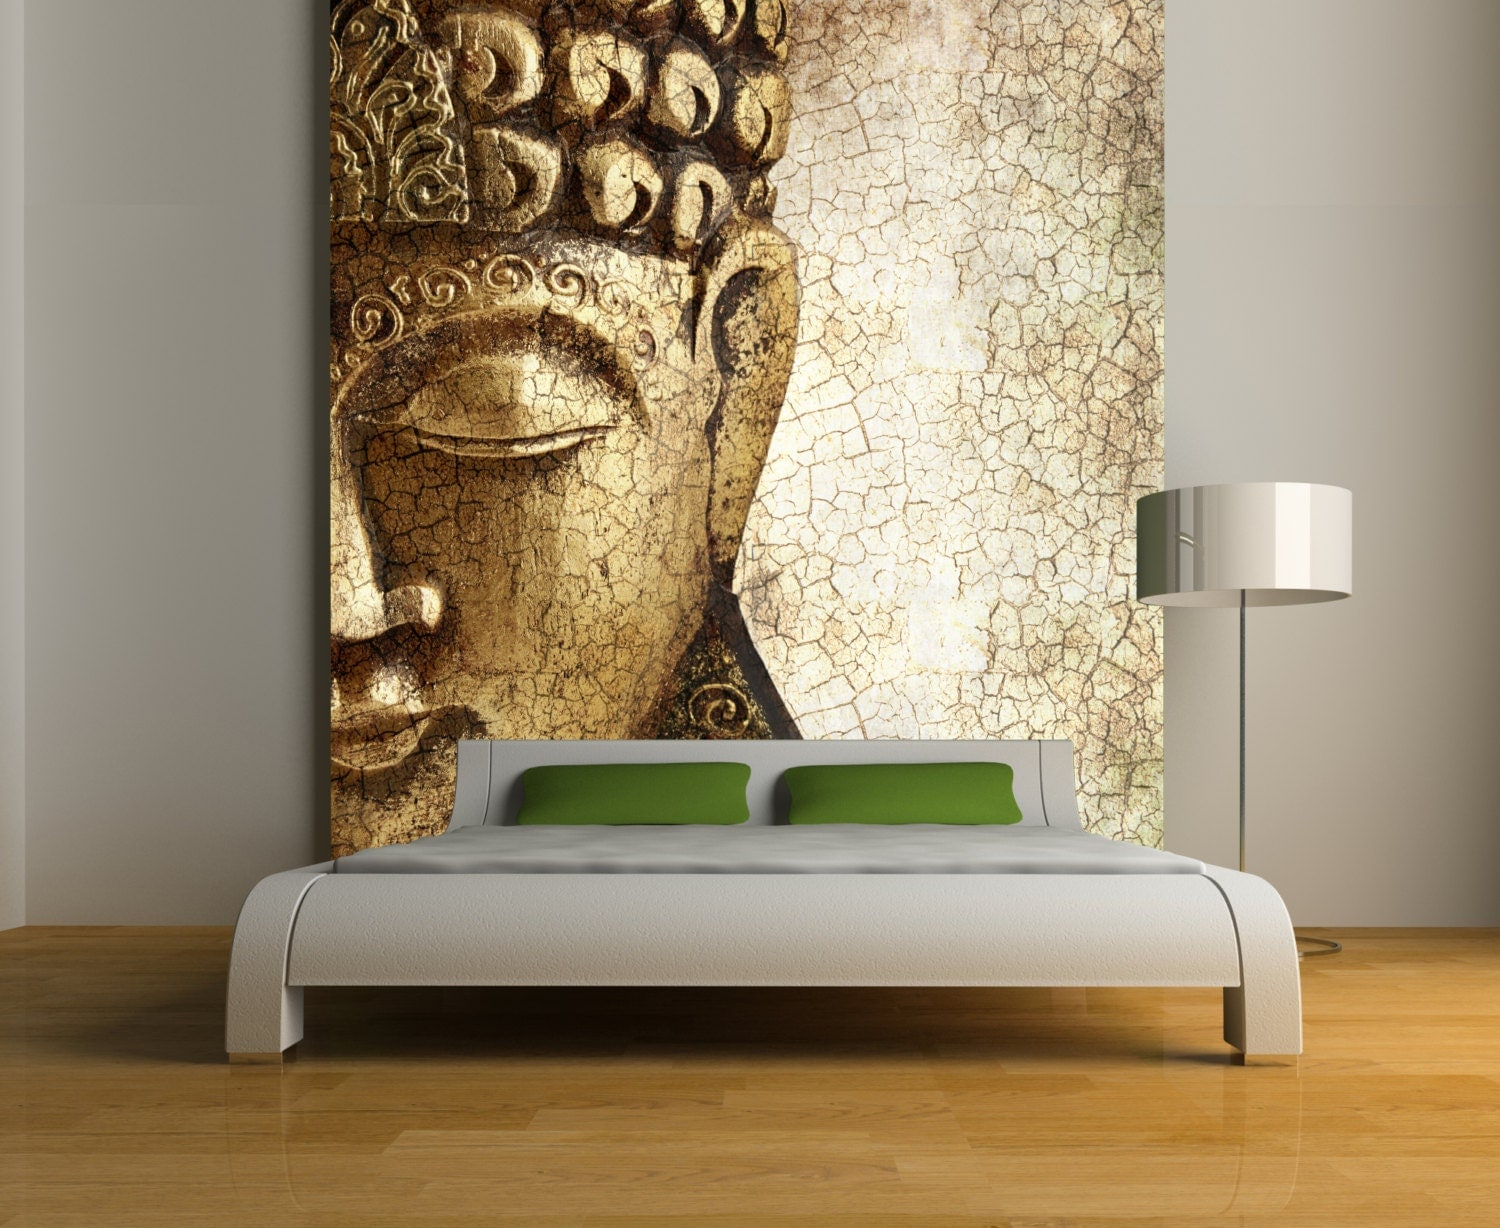 Buddha wall mural repositionable peel and stick wallpapers for Custom mural wall covering